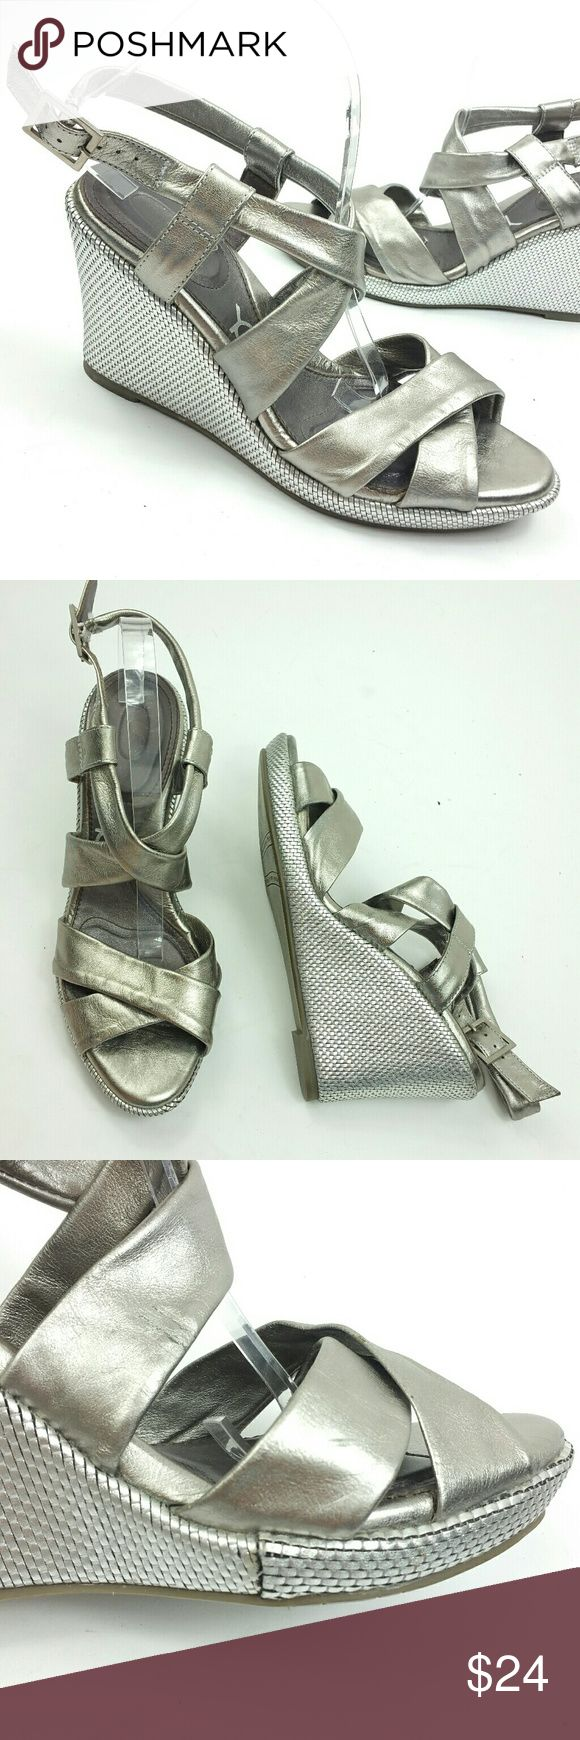 You by crocs silver wedge heel ankle strap 9.5 You by crocs silver wedge heel ankle strap 9.5  Size 9.5  Flaw Light flaw in crease, see pictures, small scratch on toe area CROCS Shoes Wedges